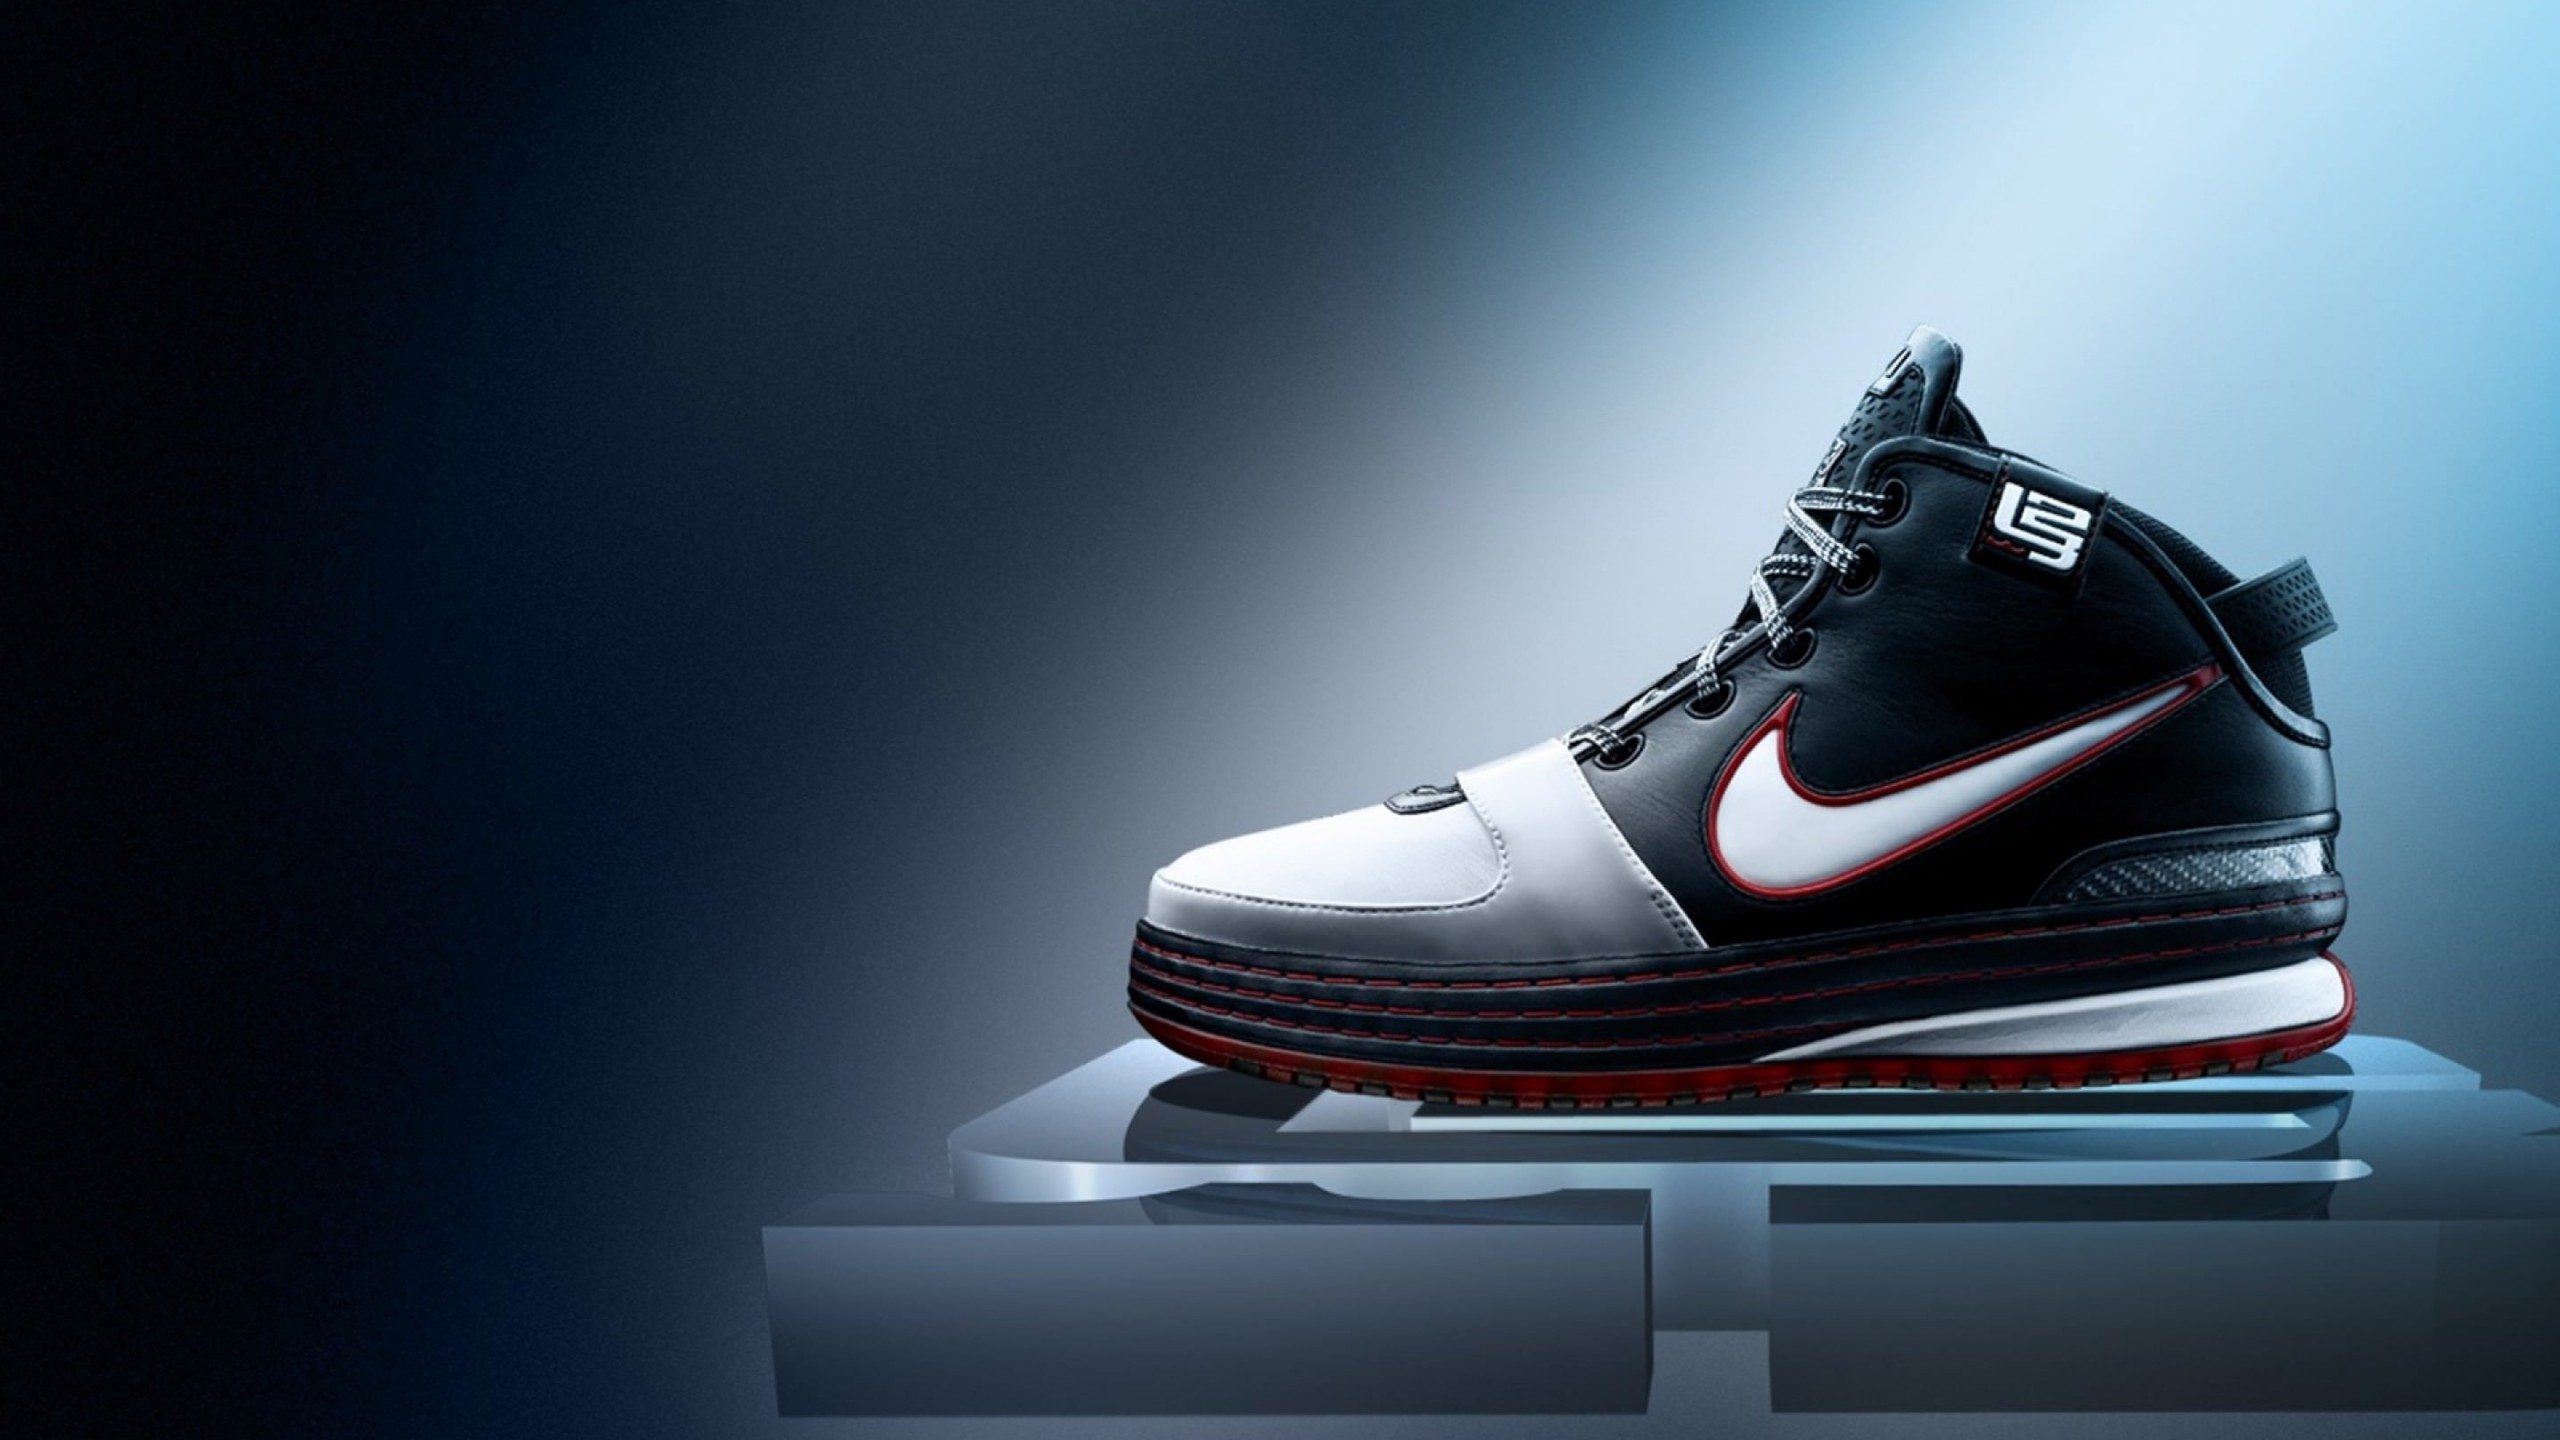 Nike Lebron James L23 Wallpaper for Desktop 2560x1440